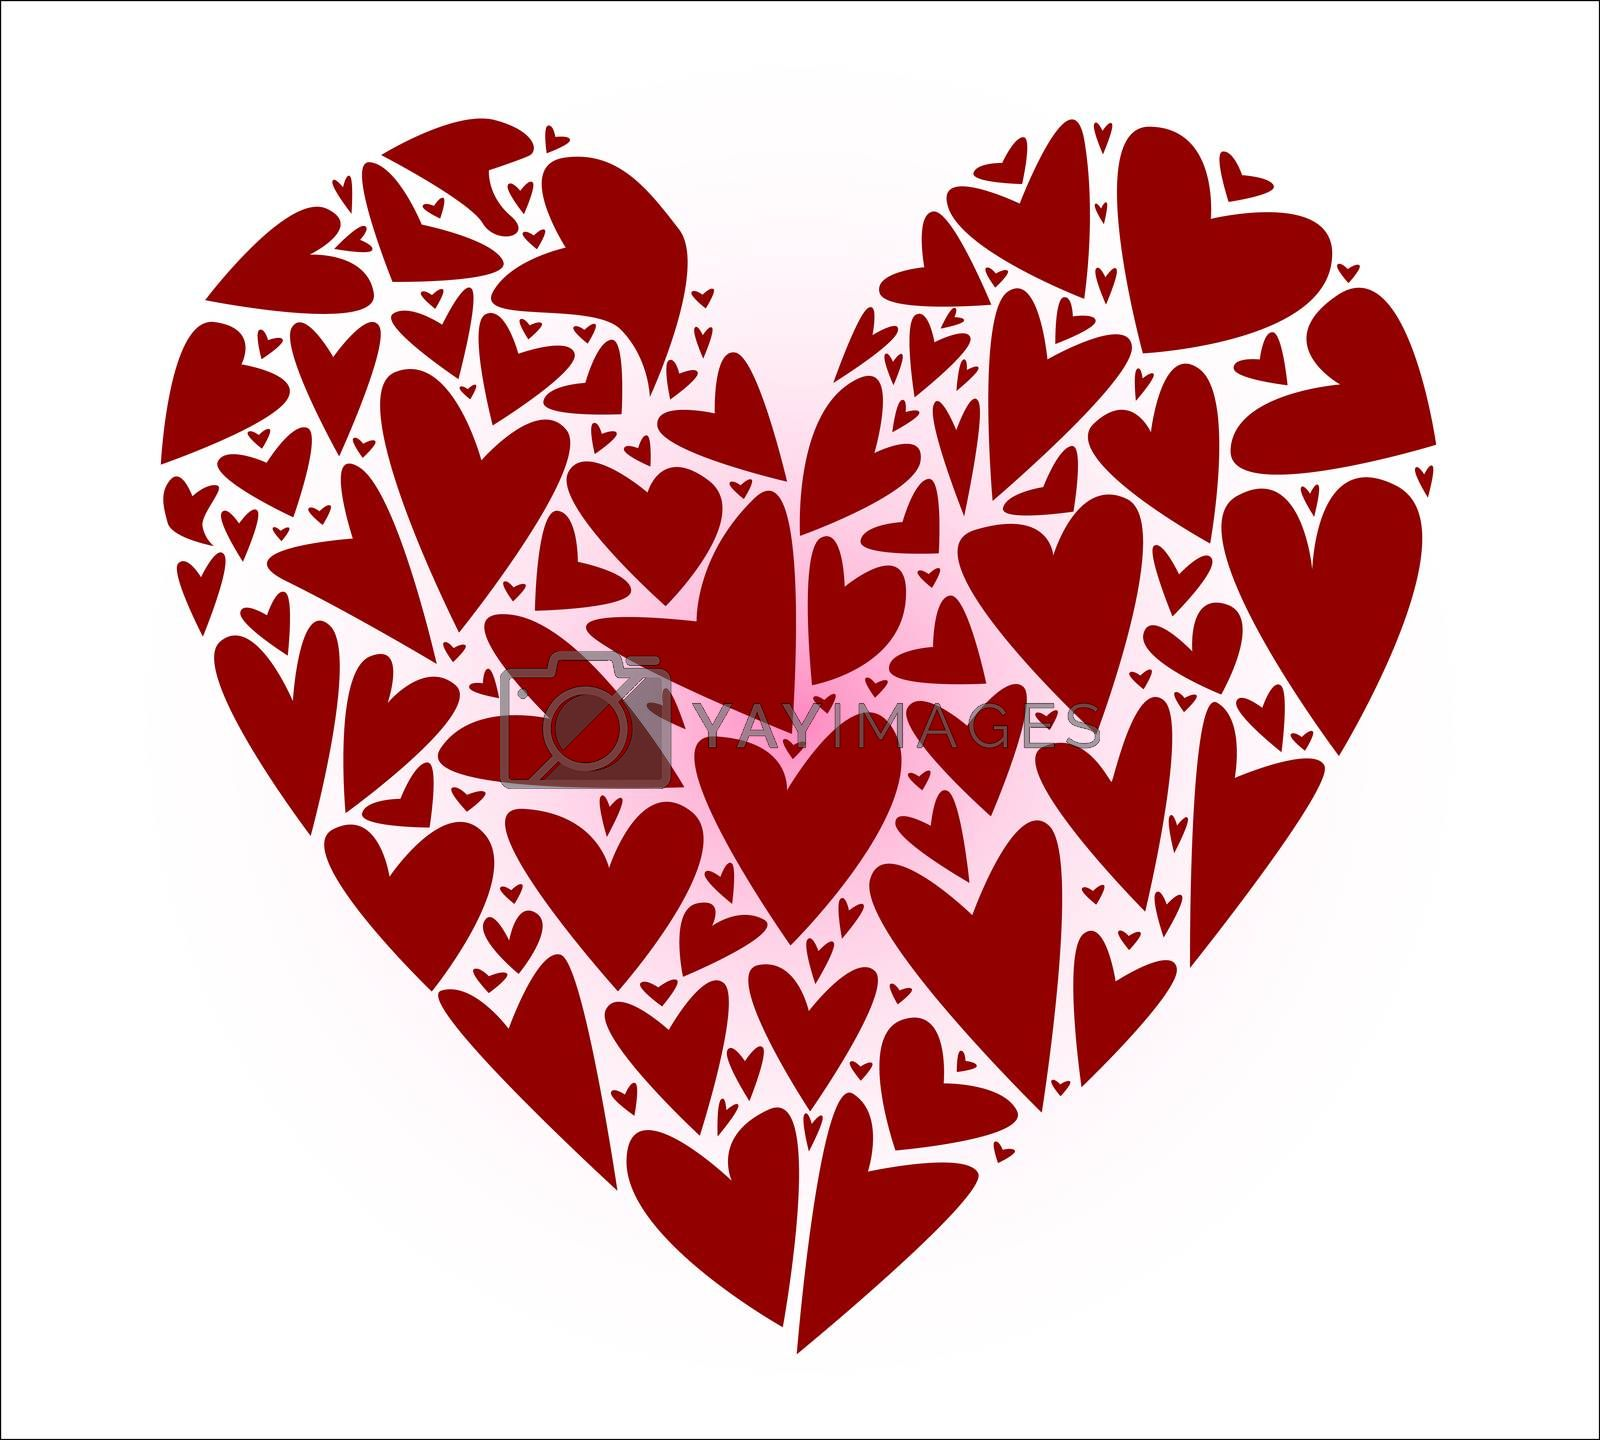 A large heart made up of several smaller hearts against a white background.